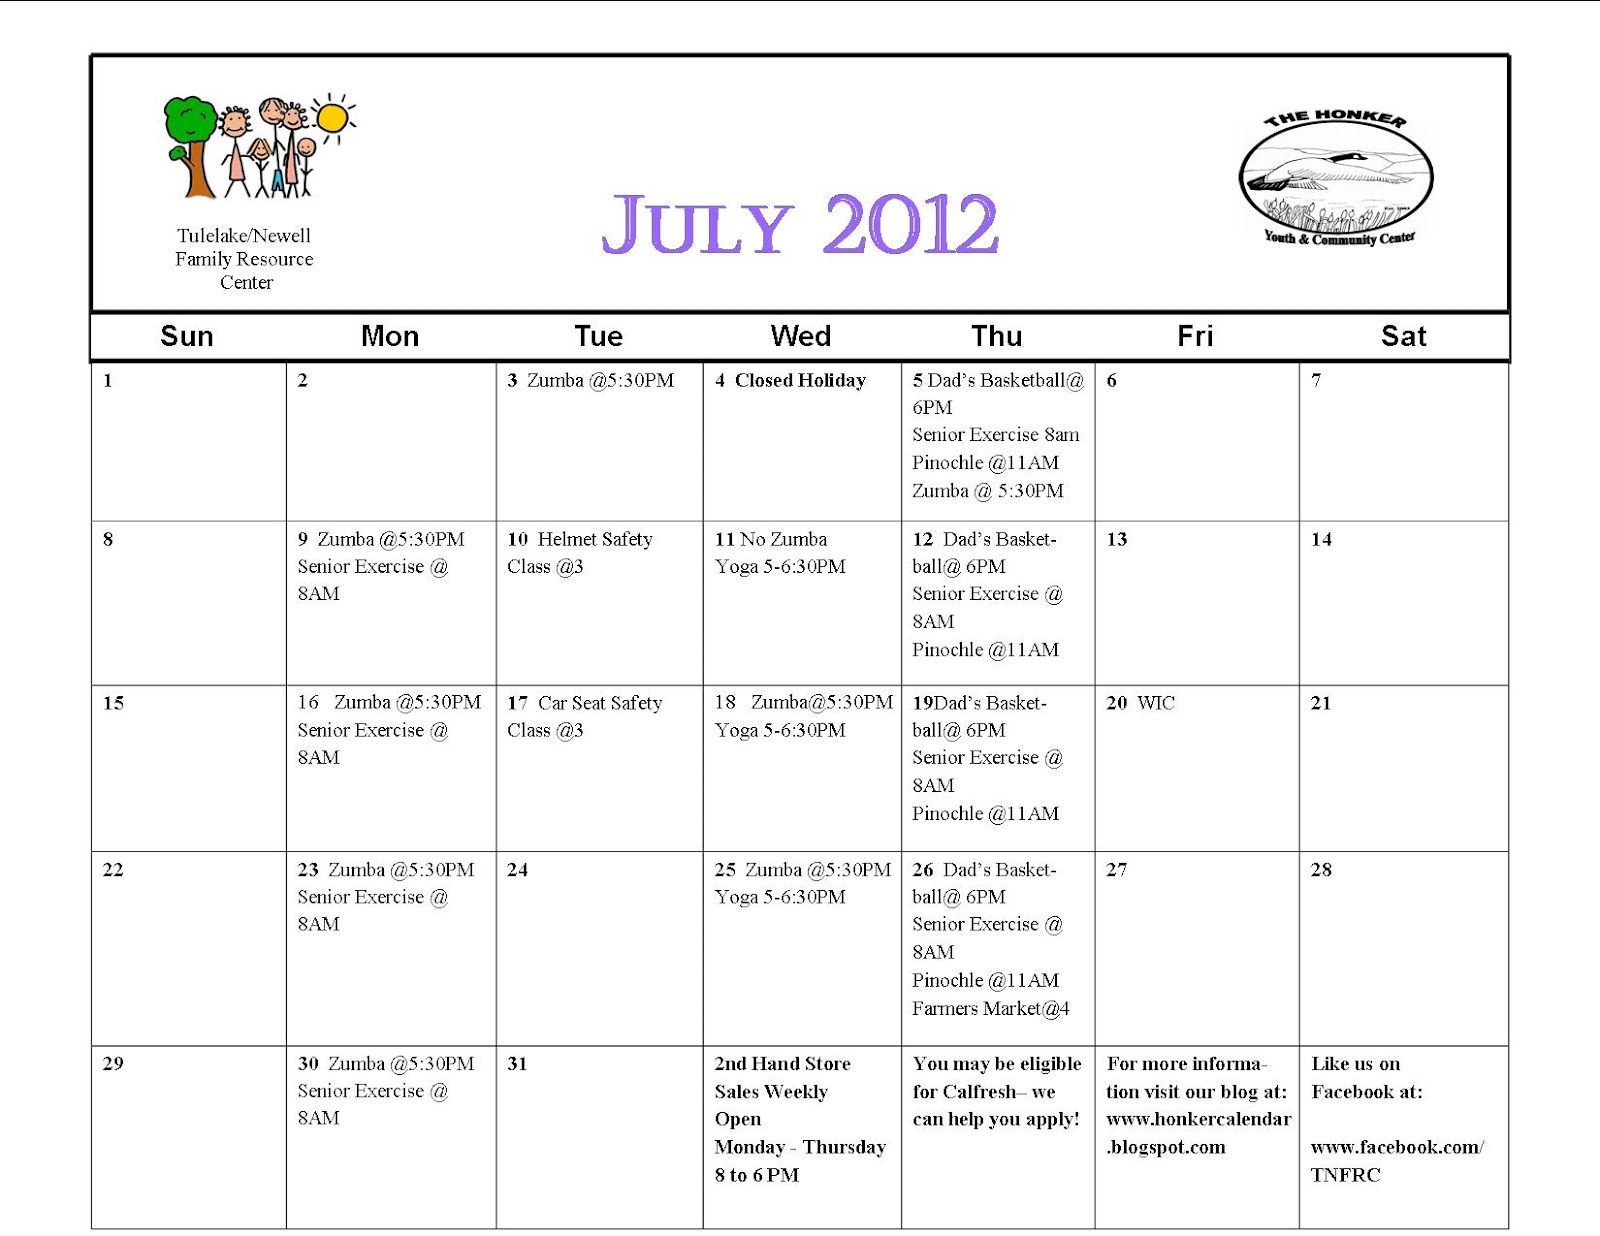 assisted living activity calendar template - activity calendars july new calendar template site